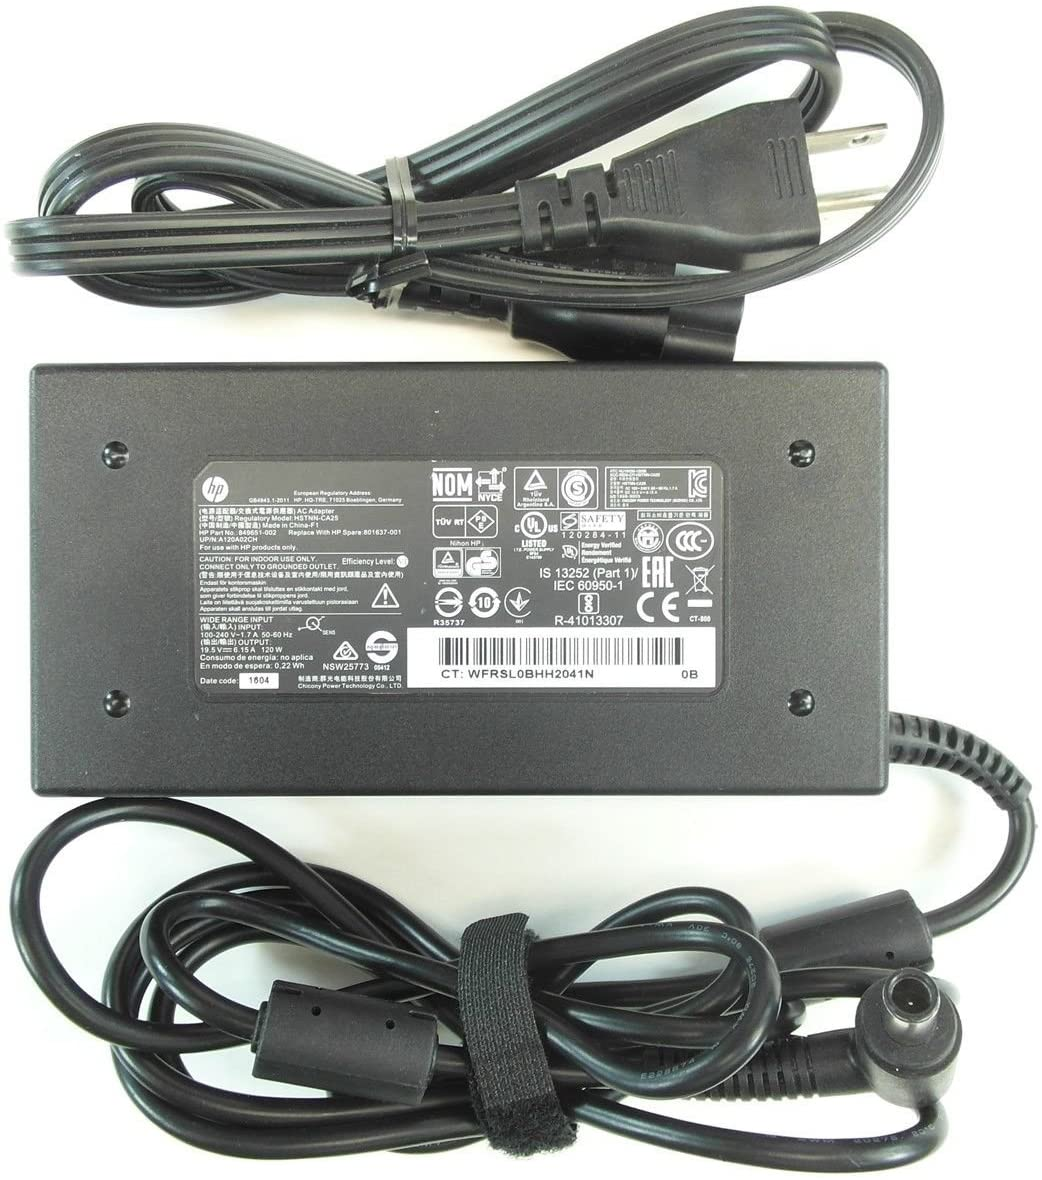 New Genuine HP Envy Pavilion 19.5V 6.15A 120W Smart Pin AC Adapter 801637-001